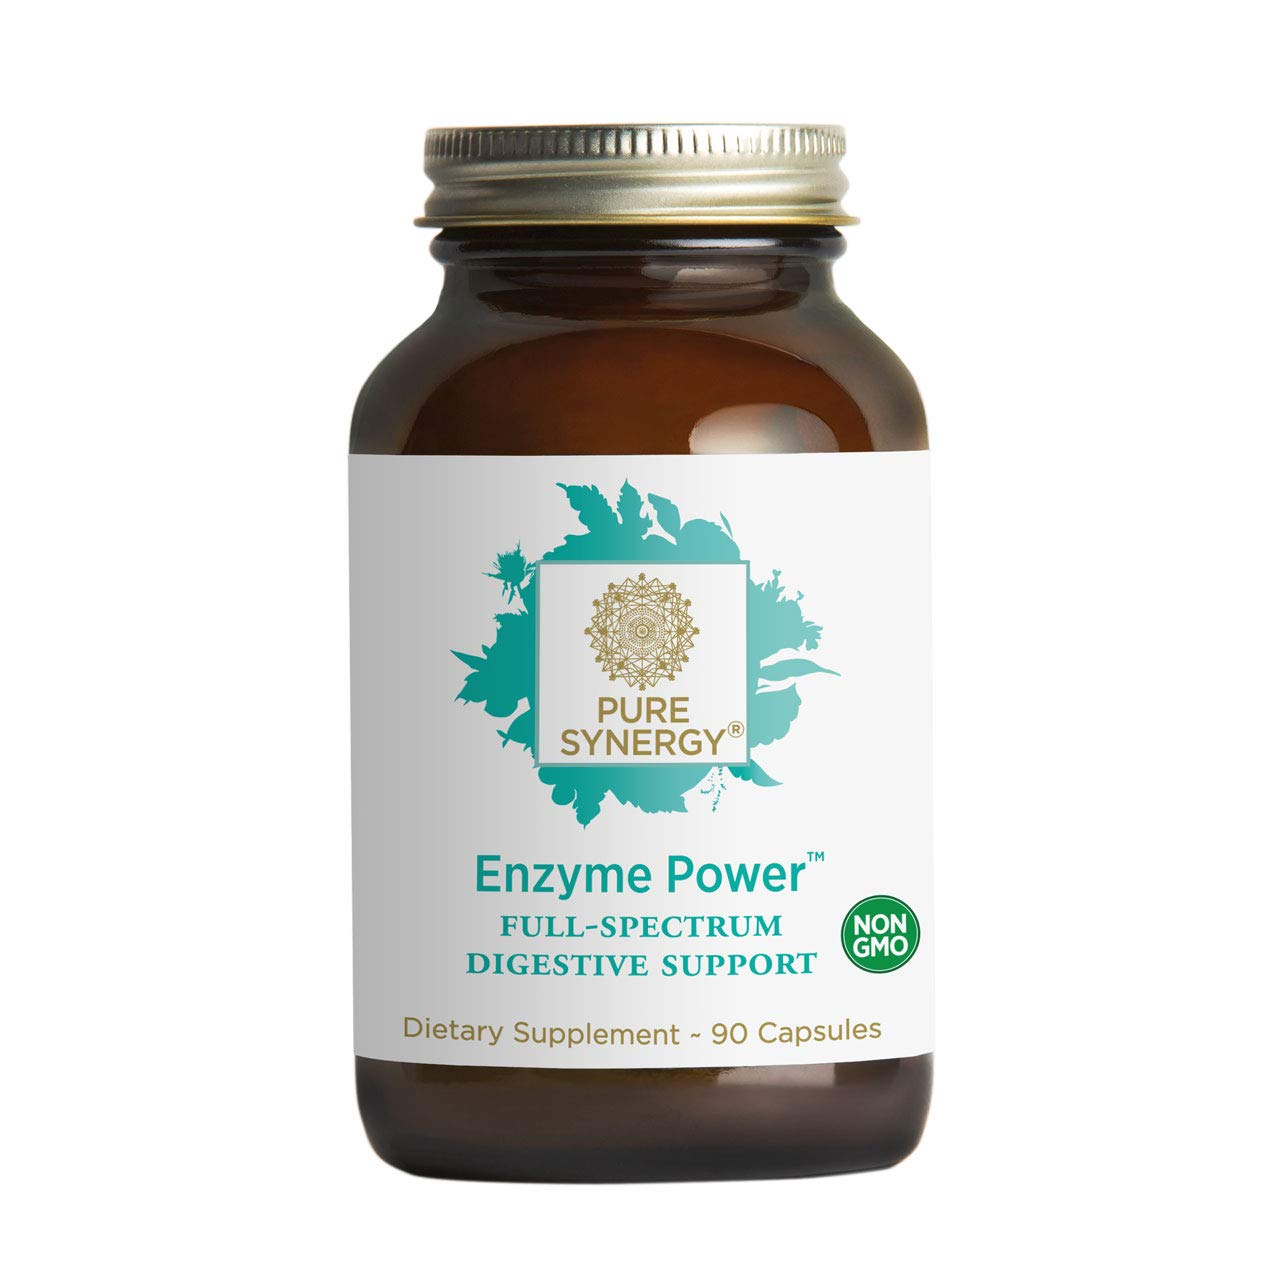 Pure Synergy Enzyme Power (90 Capsules) 15+ Plant-Based Digestive Enzymes Including Bromelain, Lipase, Amylase & More